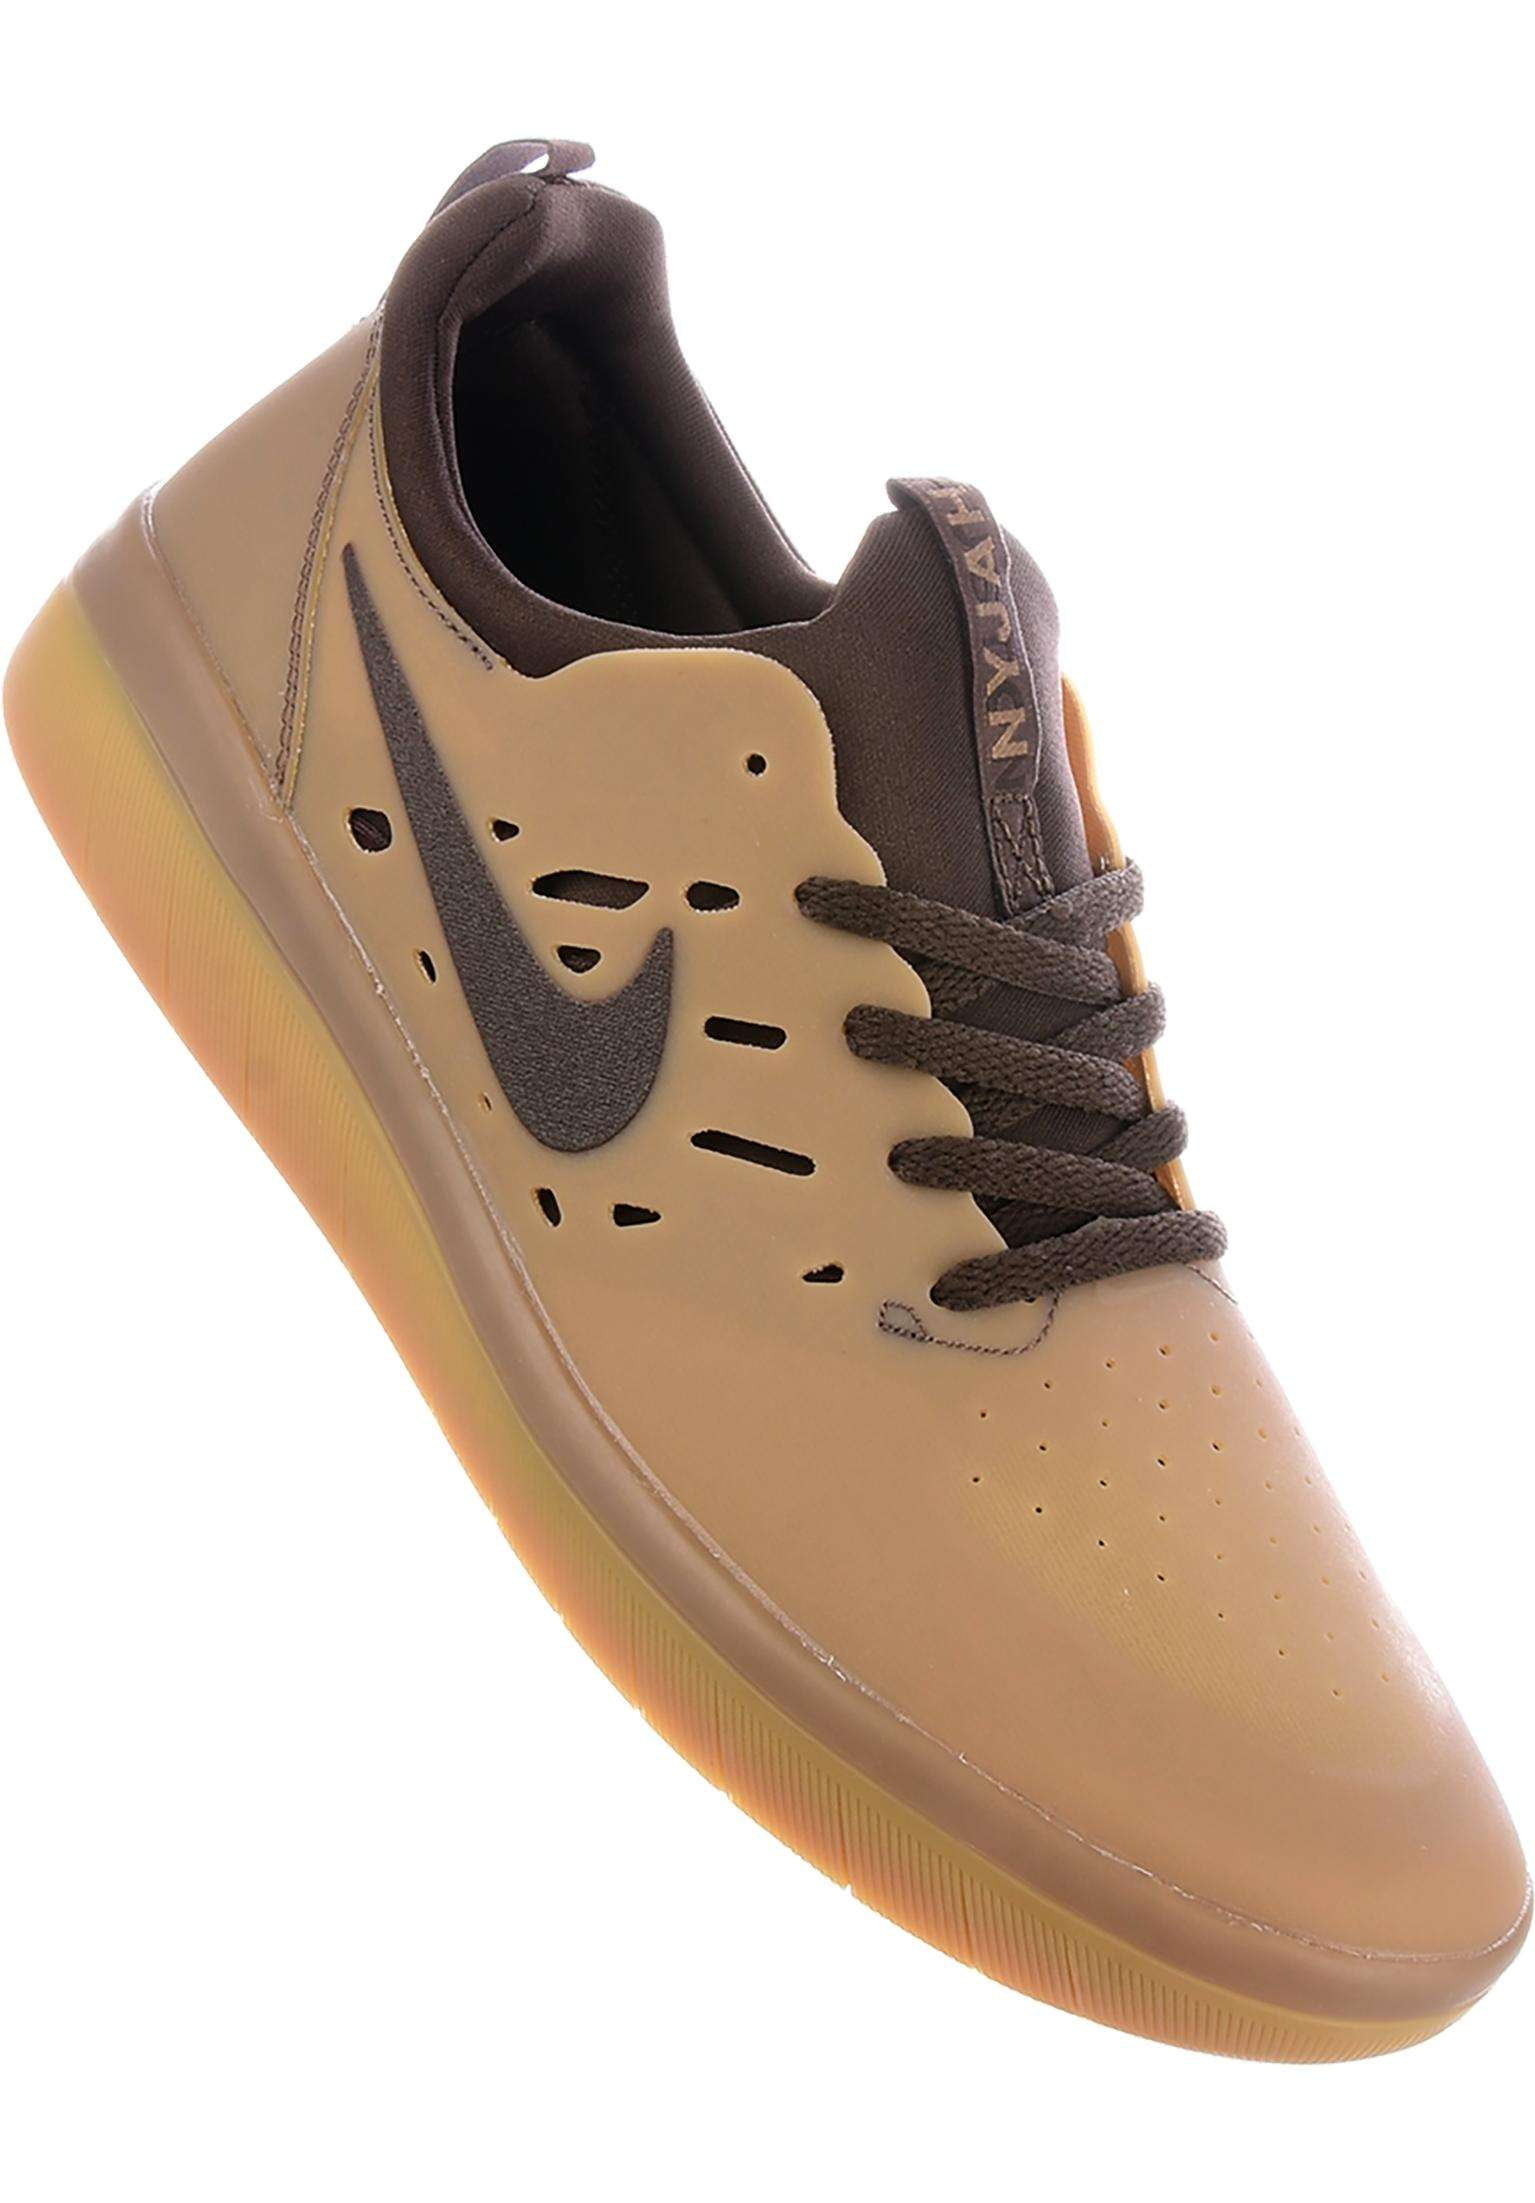 new concept 4cc51 9a594 Nyjah Free Skateboarding Nike SB All Shoes in gumdarkbrown for Men  Titus